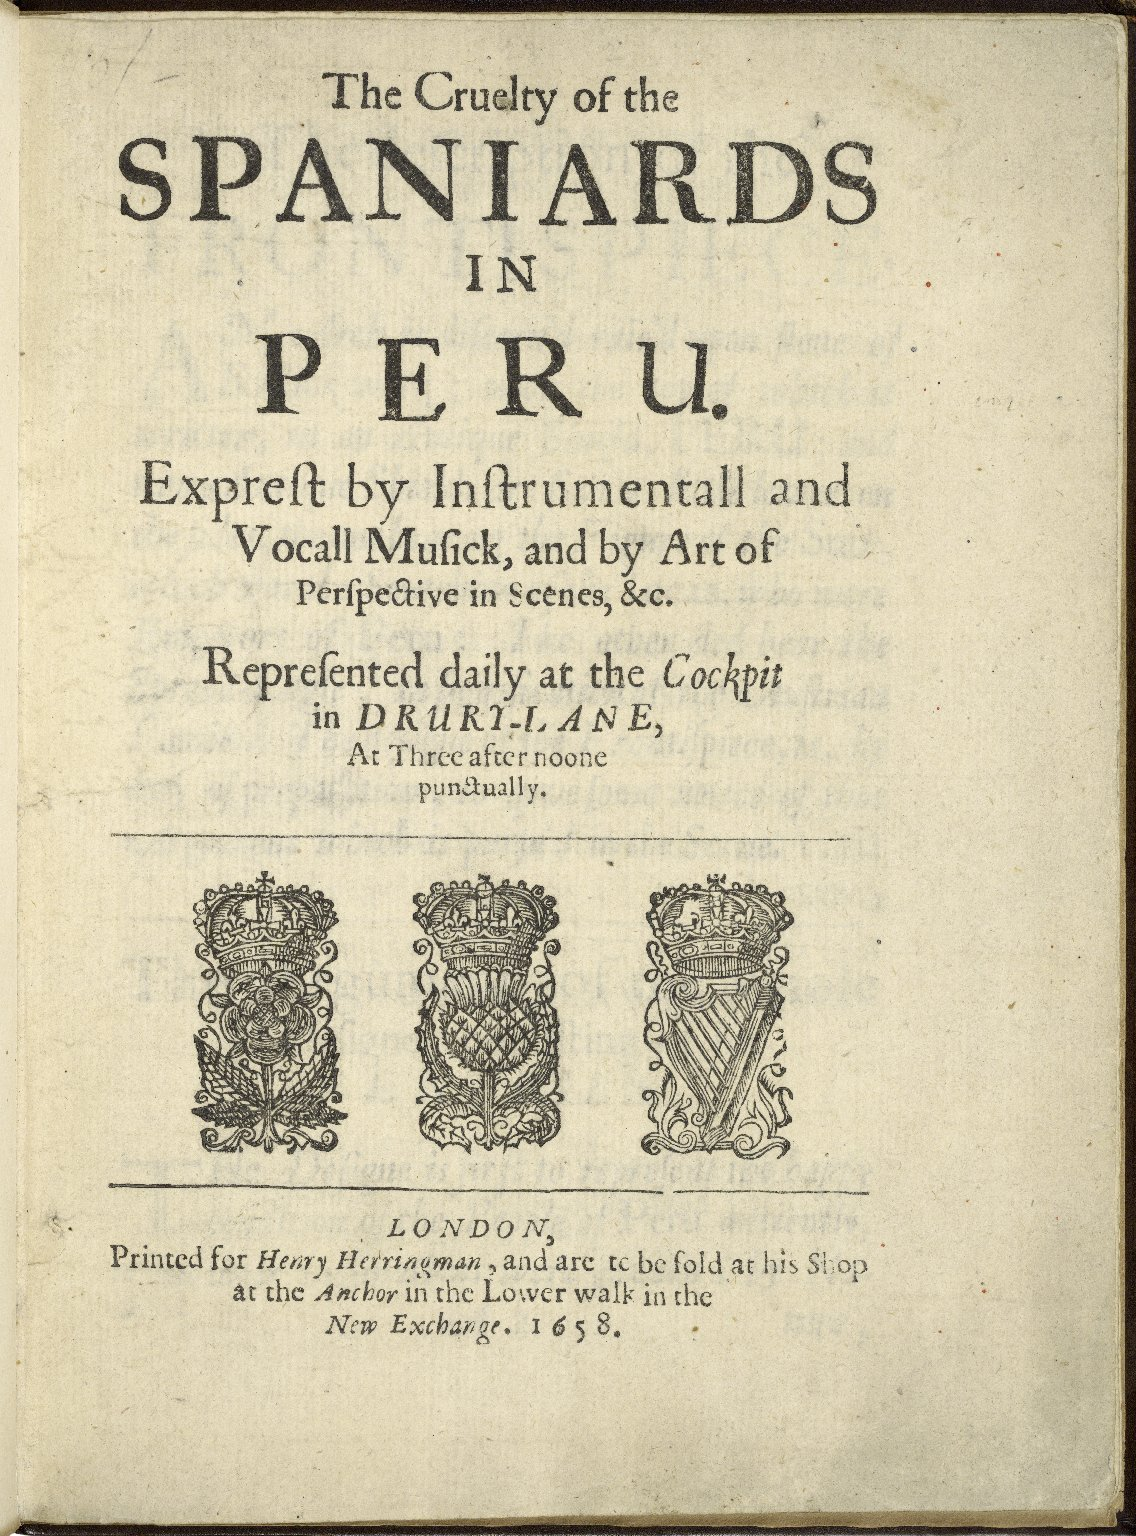 Title page of The Cruelty of the Spaniards in Peru (1658). Image courtesy of LUNA at the Folger Shakespeare Library.